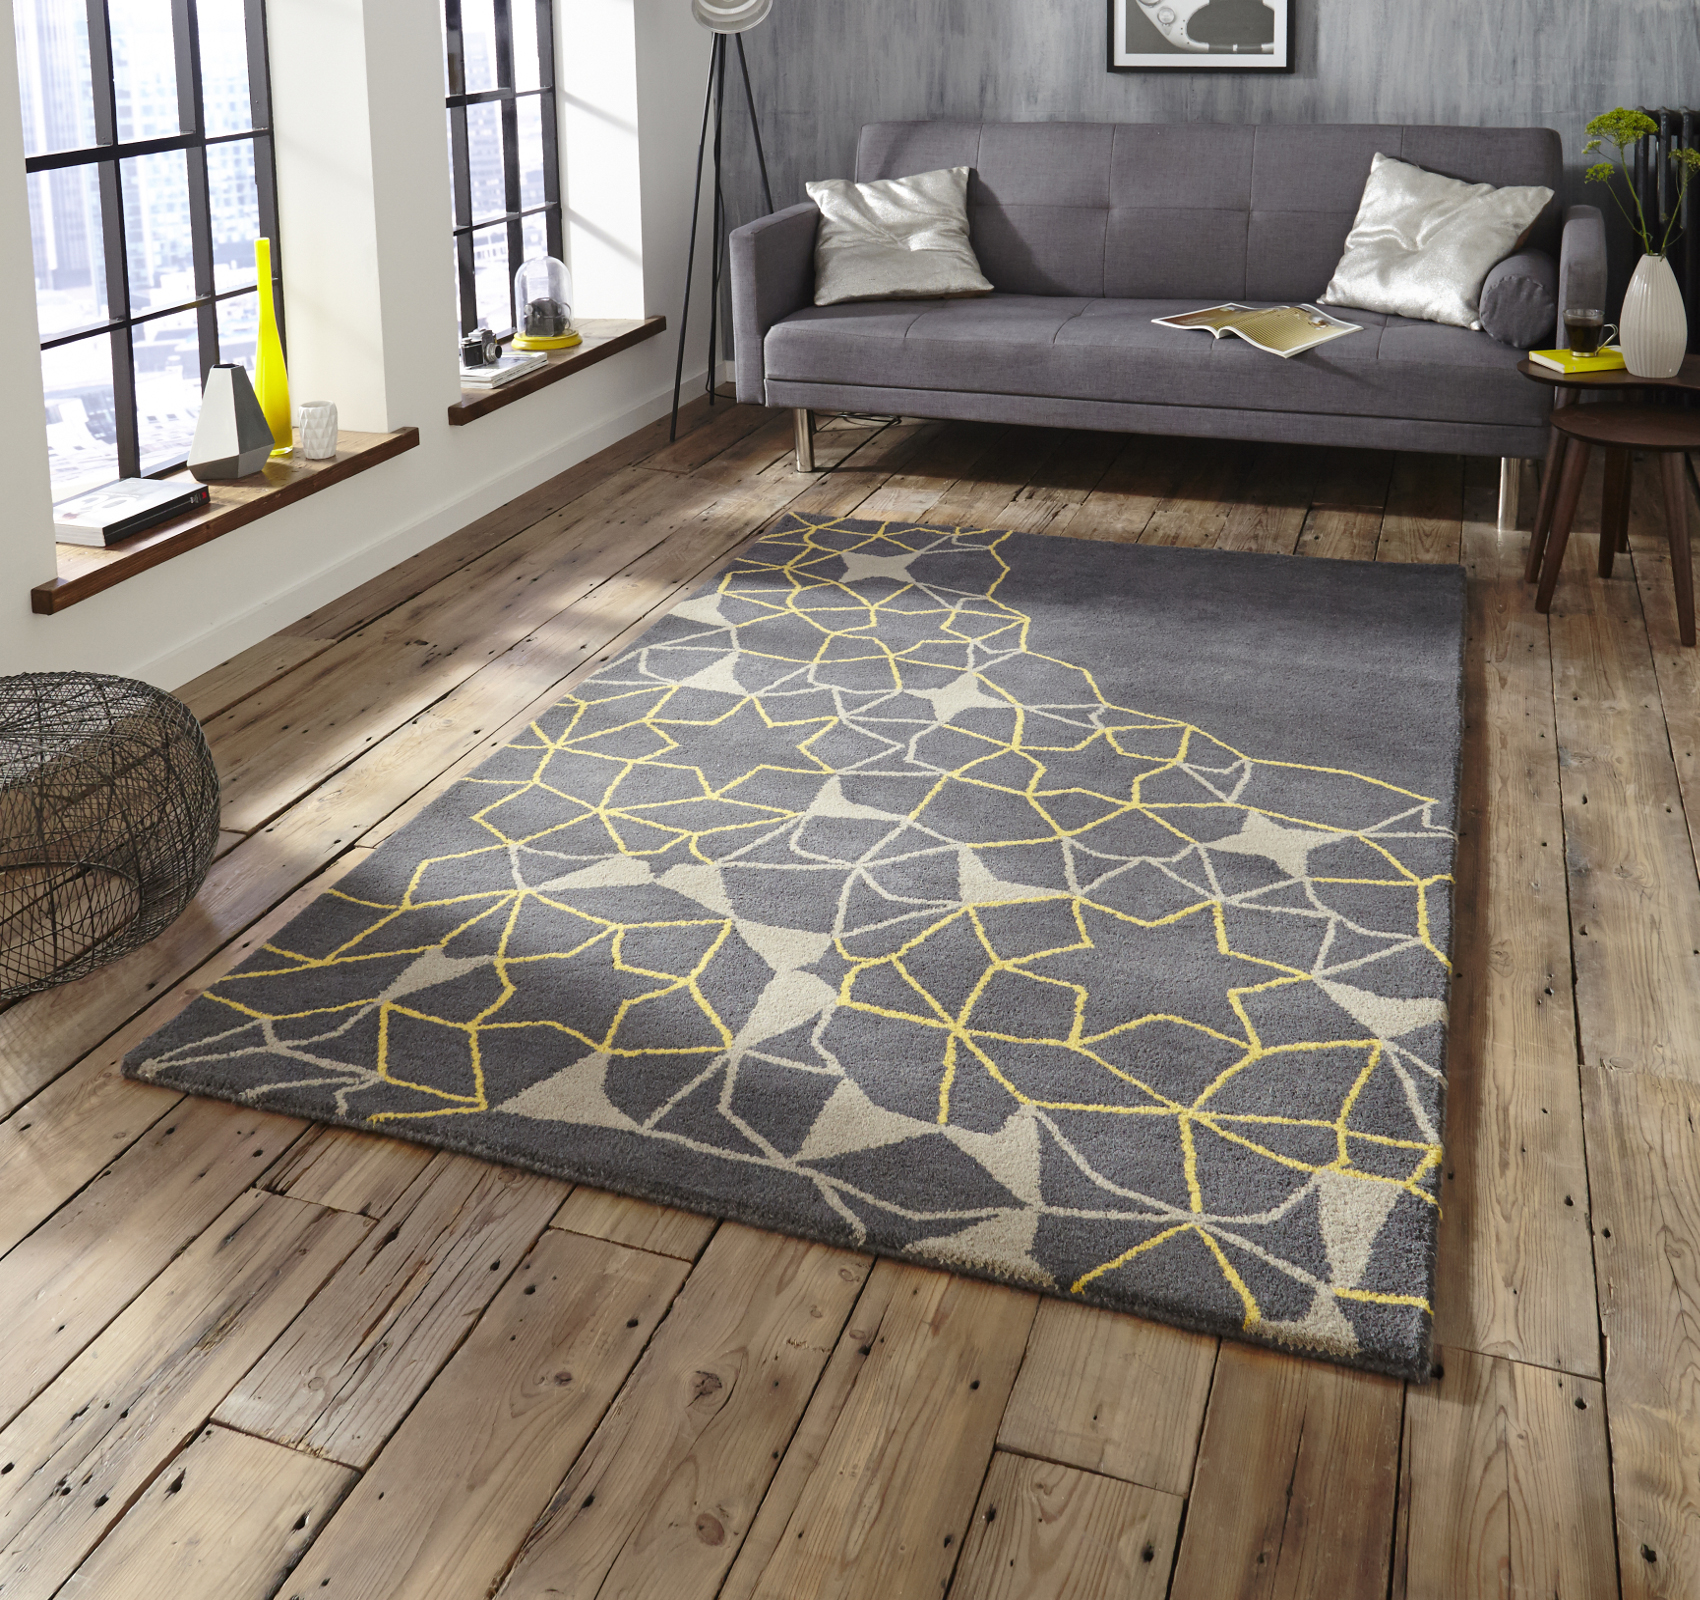 Large floor rugs grey u0026 yellow geometric rug 100% wool arrows u0026 stars hand tufted large RWVIPLI